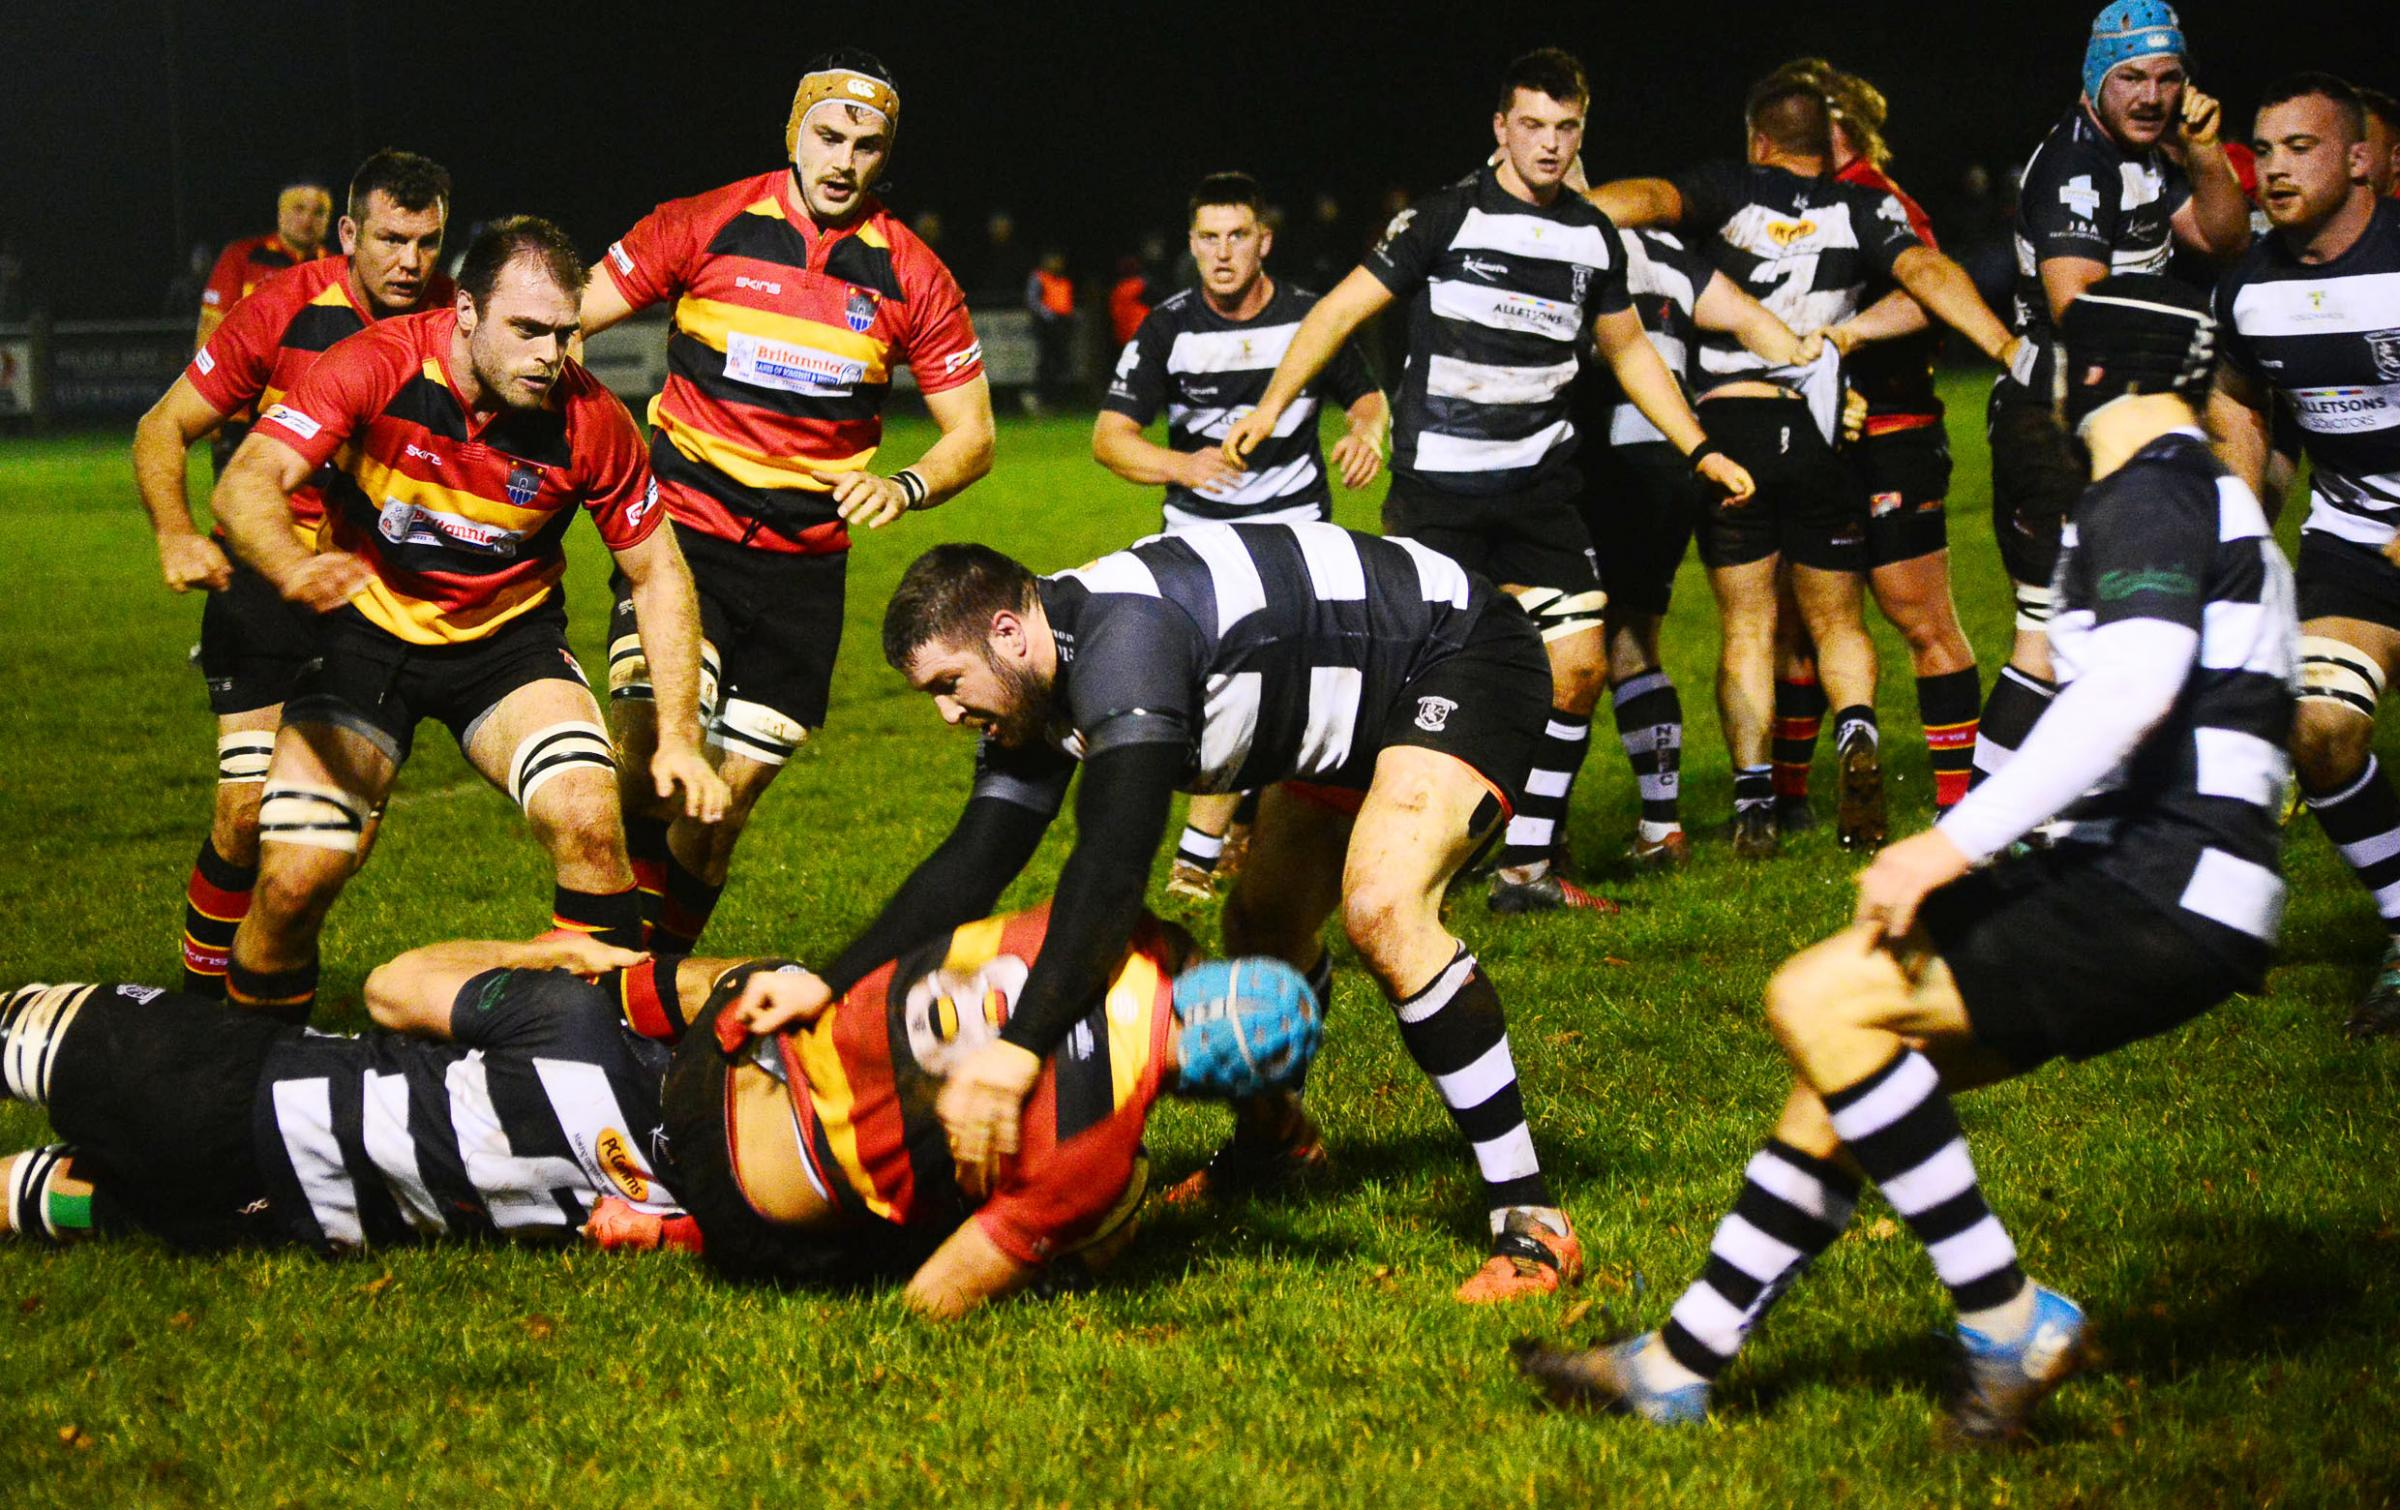 Rugby - North Petherton v Bridgwater & Albion. Pic: Steve Richardson.